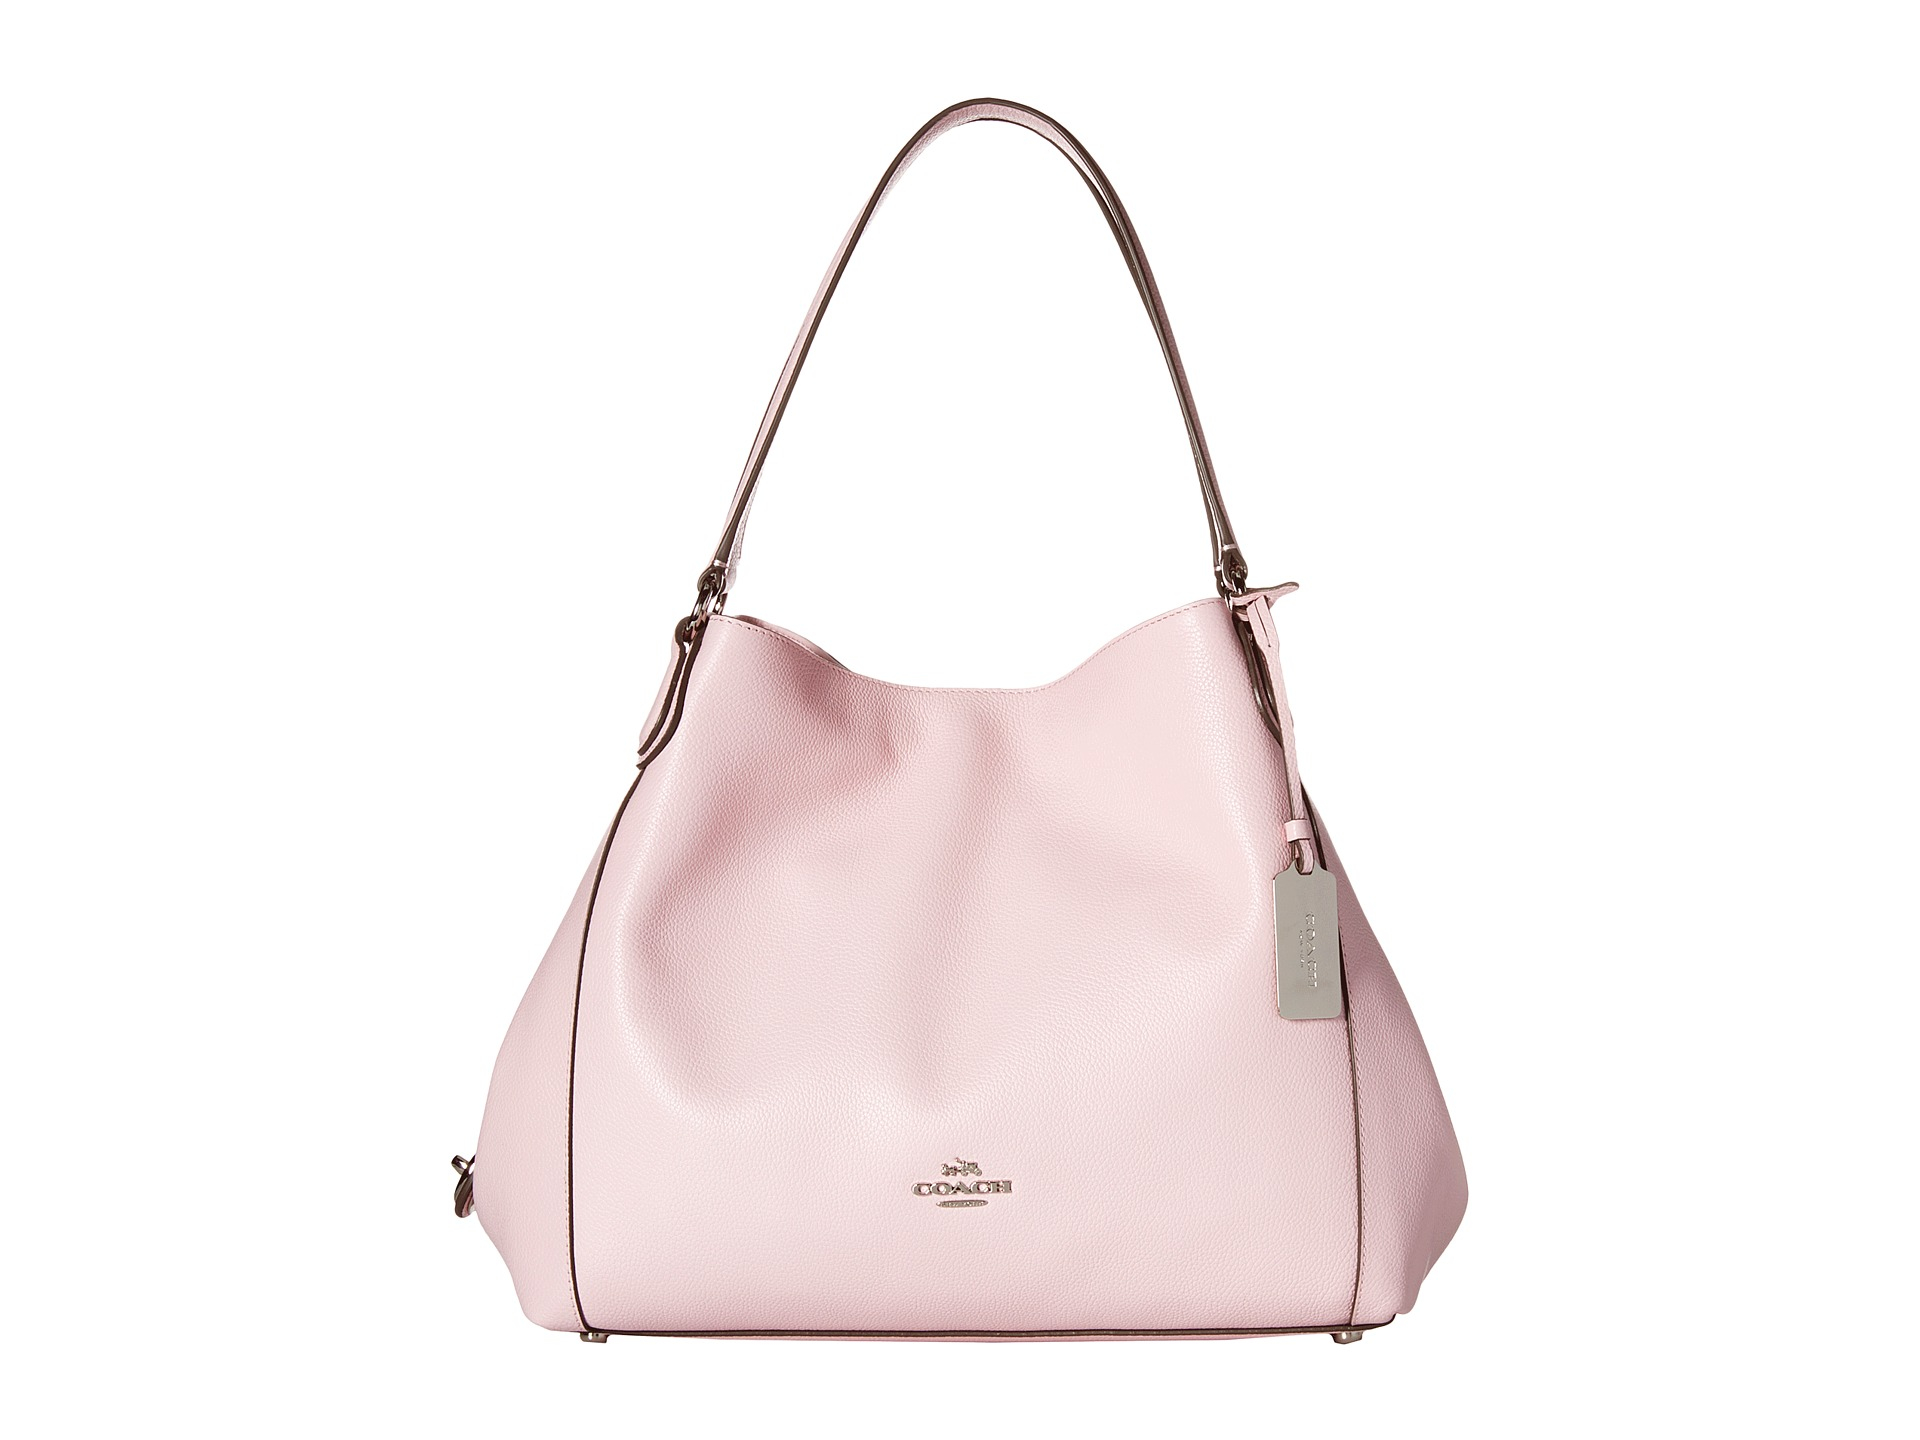 bcdc752263 Lyst - COACH Refined Pebble Leather Edie 31 Shoulder Bag in Pink